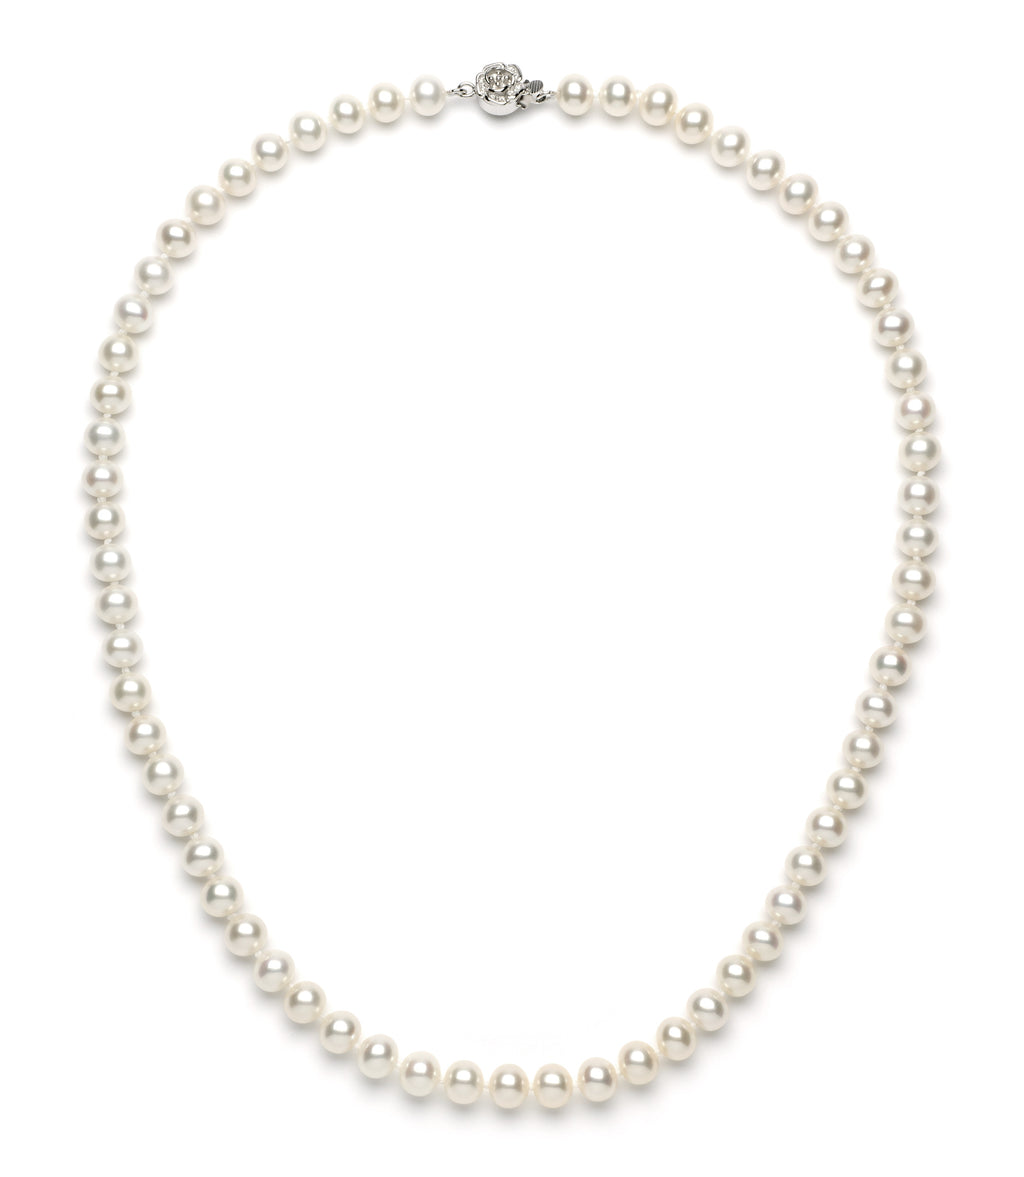 6.0-7.0 mm White Freshwater Pearl Necklace